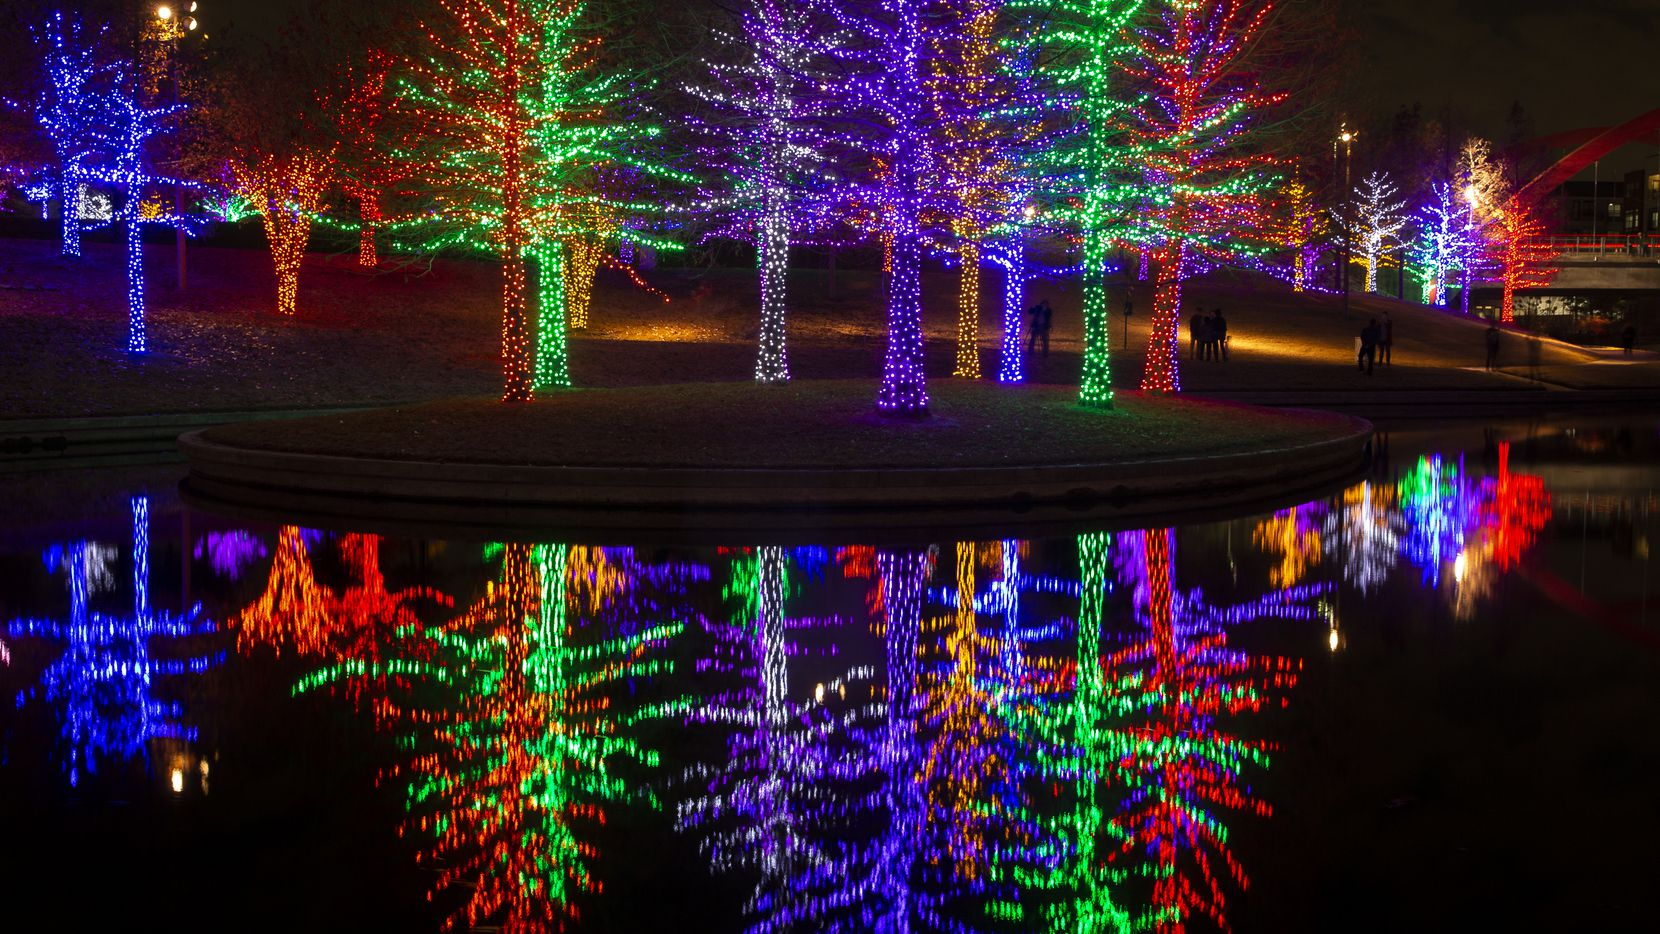 Vitruvian Park has more than 550 illuminated trees wrapped in 1.5 million sparkling LED lights.